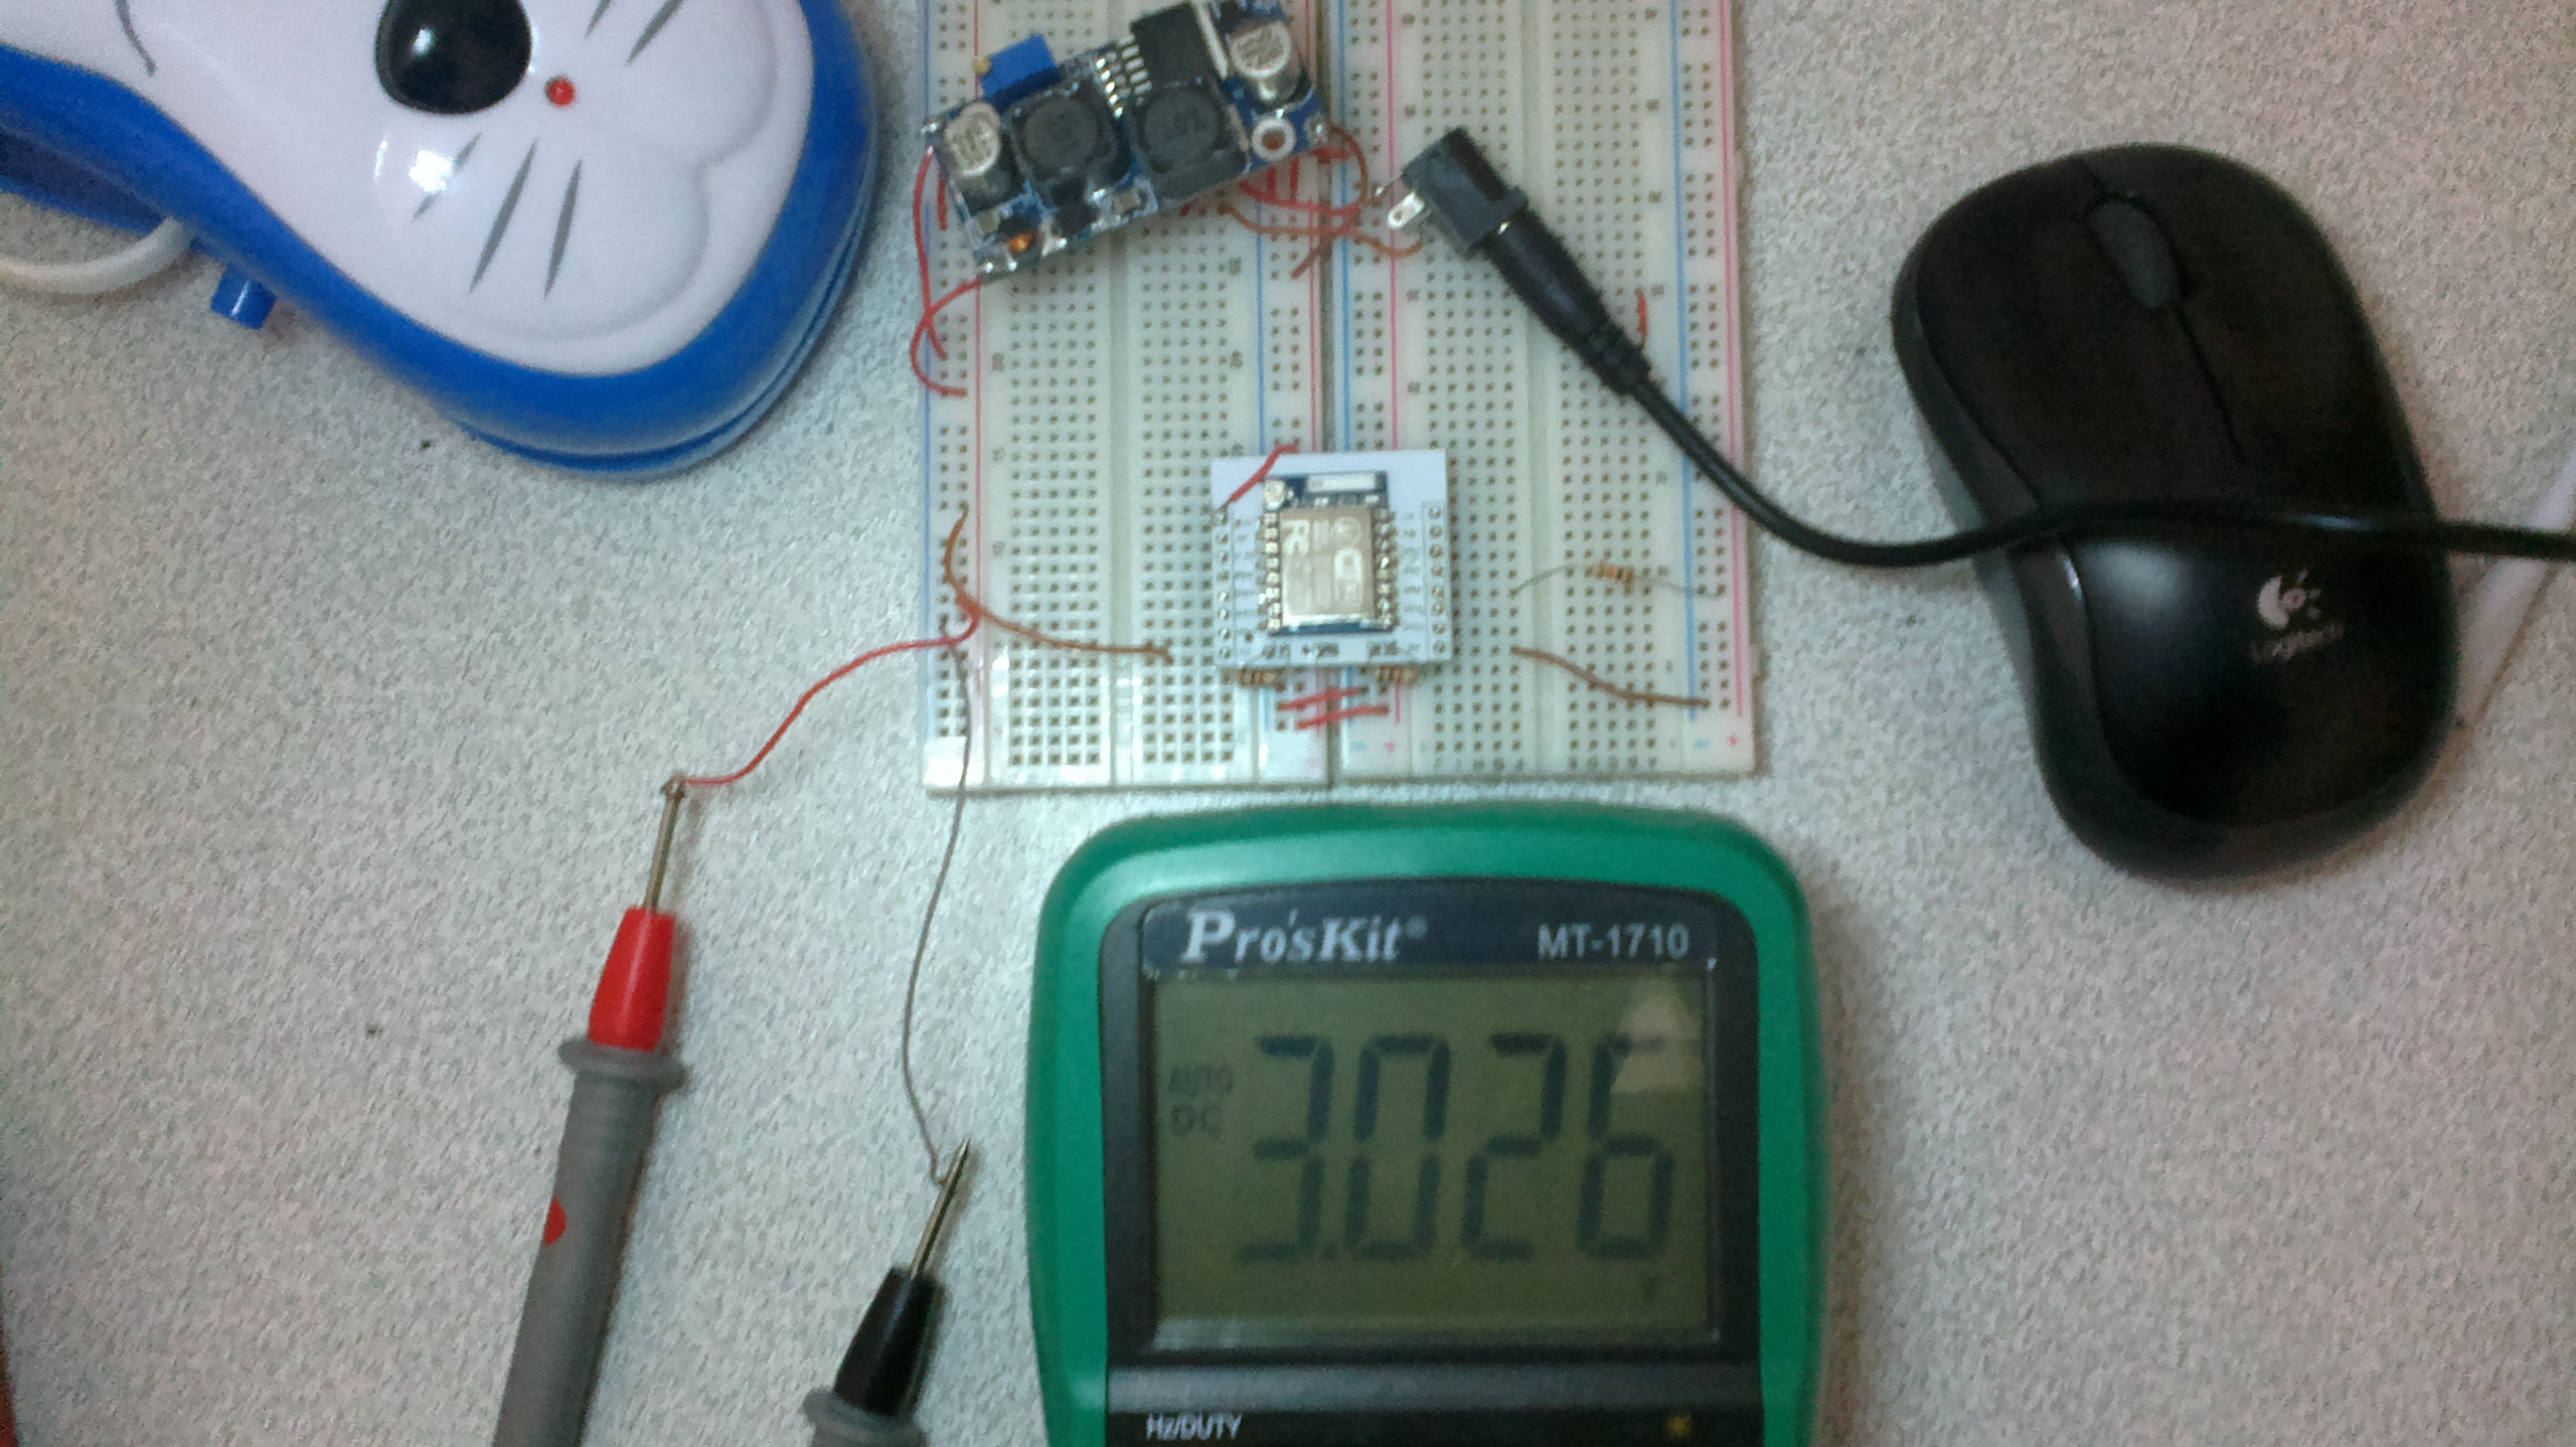 Resolved Voltage Drop Of Lm2577s Supply Power Management Forum Switching Regulators Using Lm2575 And Lm2577 Last Question Is Related To Bottom Two Picturethis Breadboard V Gnd Connected Each Other I Just Changed Multimeter